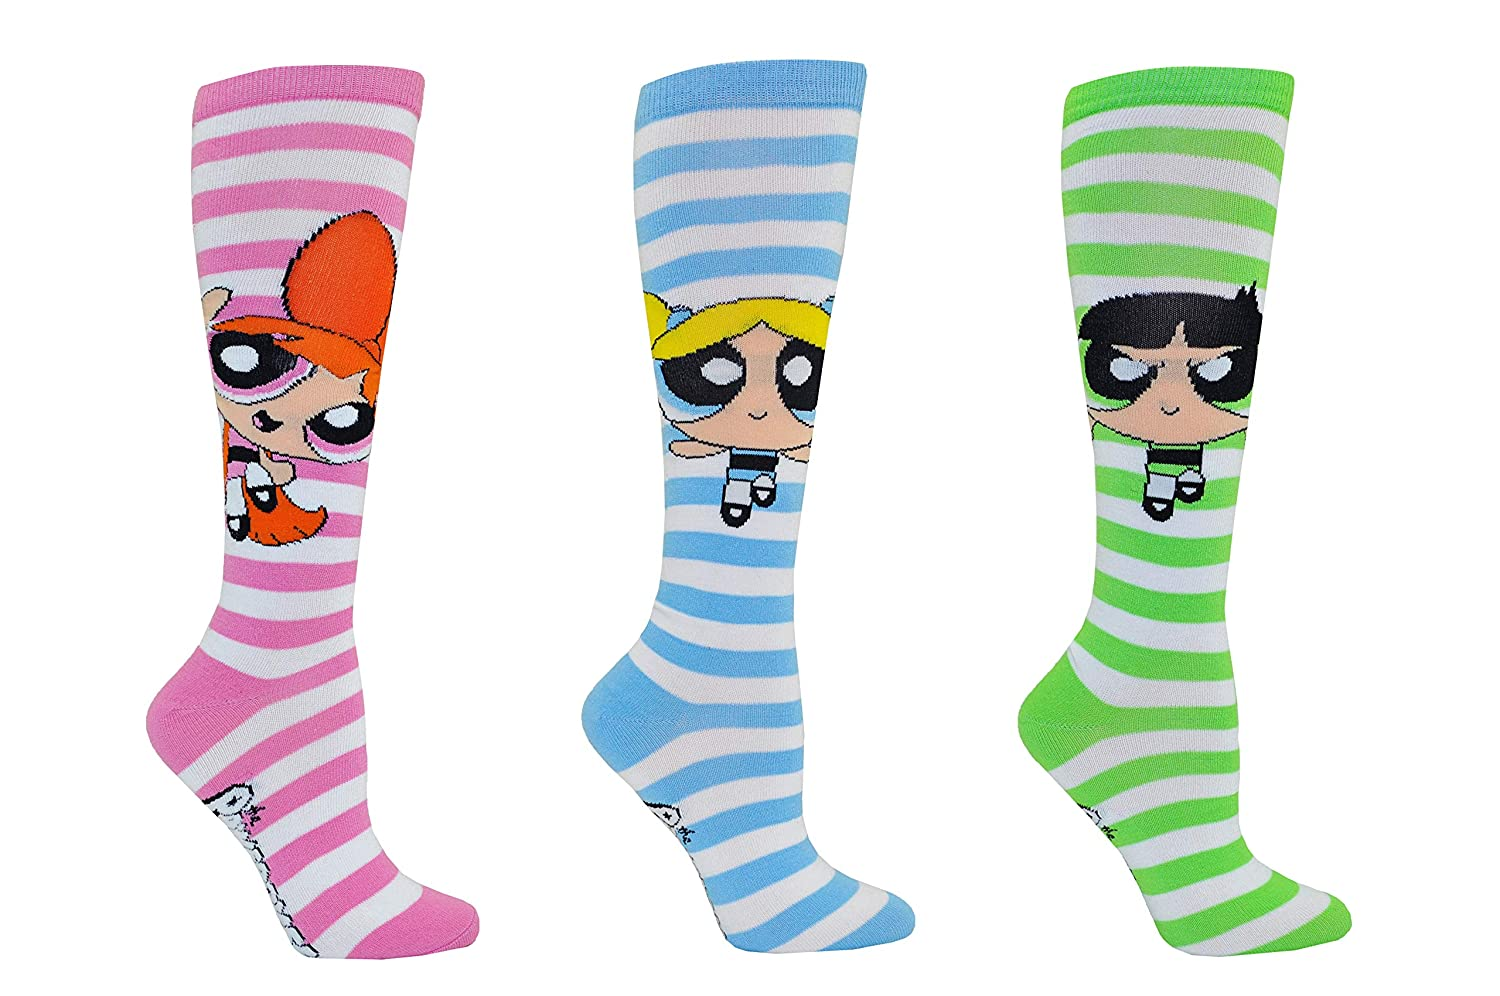 Powerpuff Girls Socks (3 Pair) - Knee High Socks - Fits Shoe Size: 4-10 (Ladies)